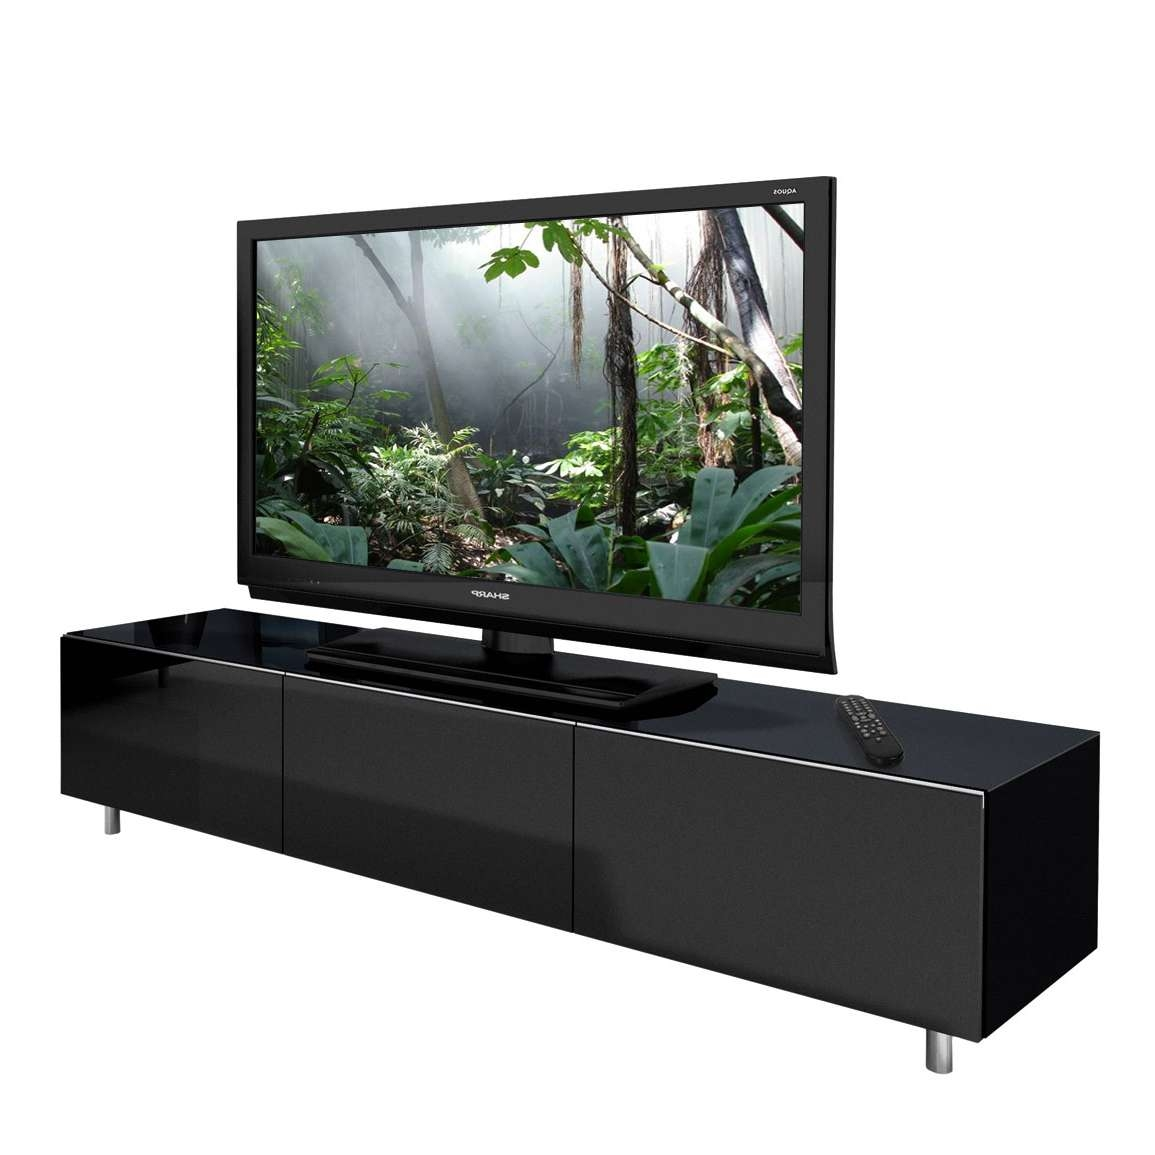 Just Racks Jrl1650 Gloss Black Tv Cabinet – Black Tv Stands In Long Low Tv Stands (View 9 of 15)